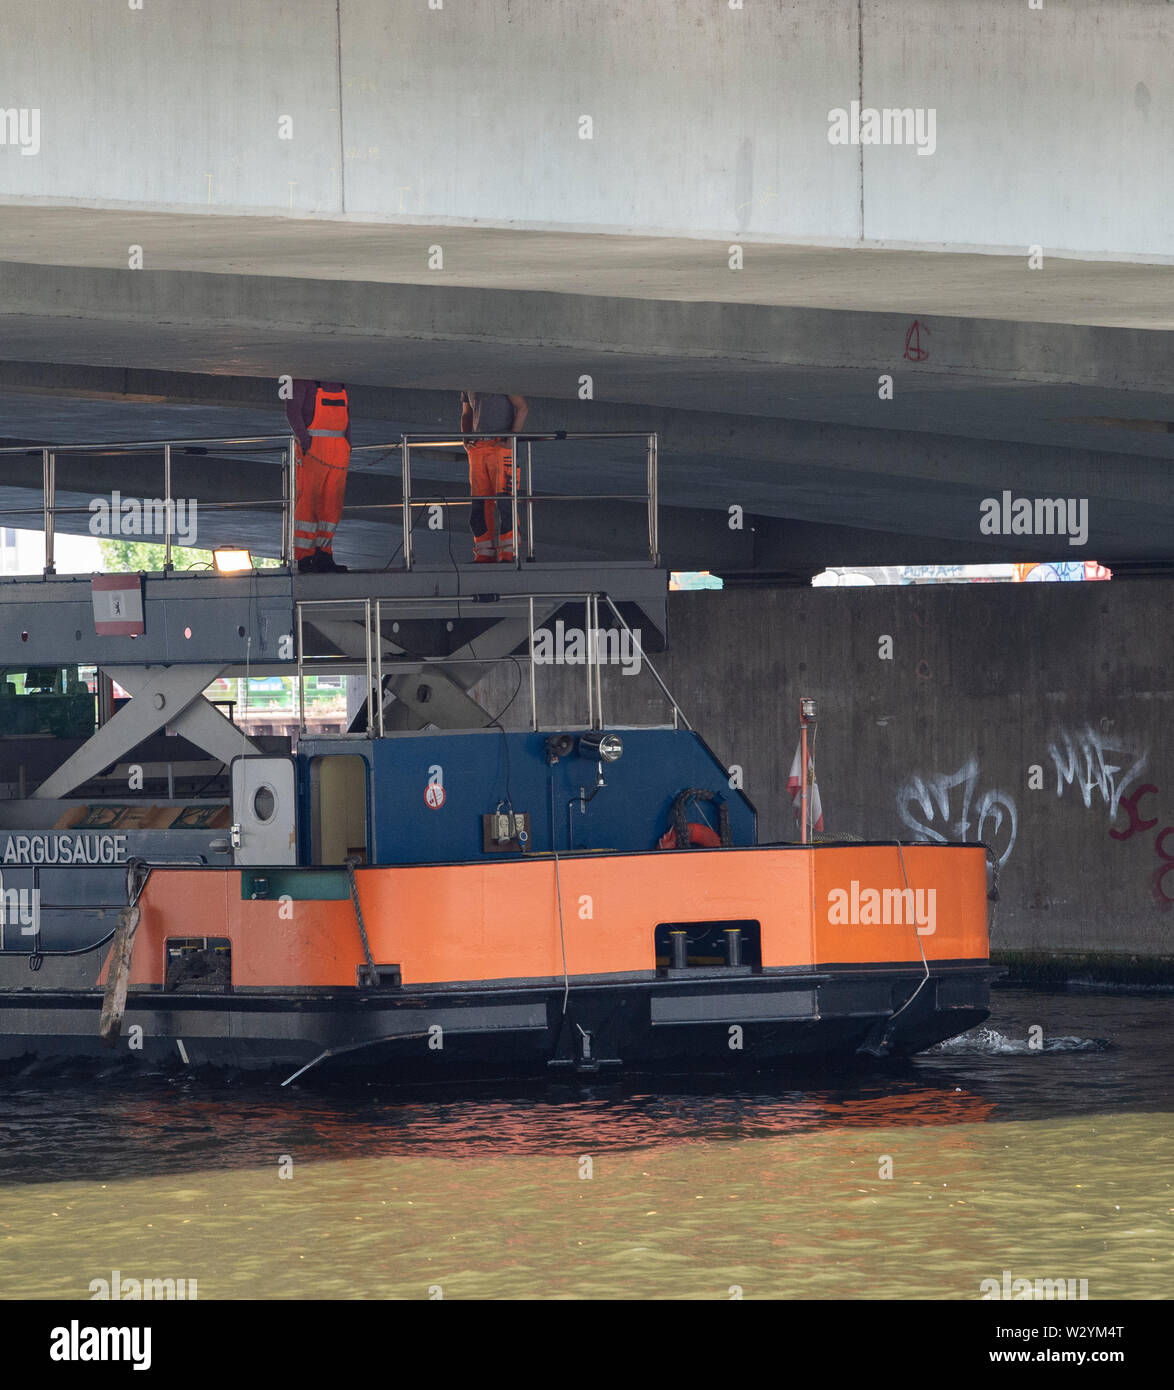 Berlin, Germany. 11th July, 2019. From a ship, workers control the underside of the Elsen Bridge. In the summer of 2018, considerable damage was found to the structure, so that the bridge will be demolished and probably rebuilt by 2028. Part of the bridge has been closed to traffic since 2018. Credit: Paul Zinken/dpa/Alamy Live News - Stock Image